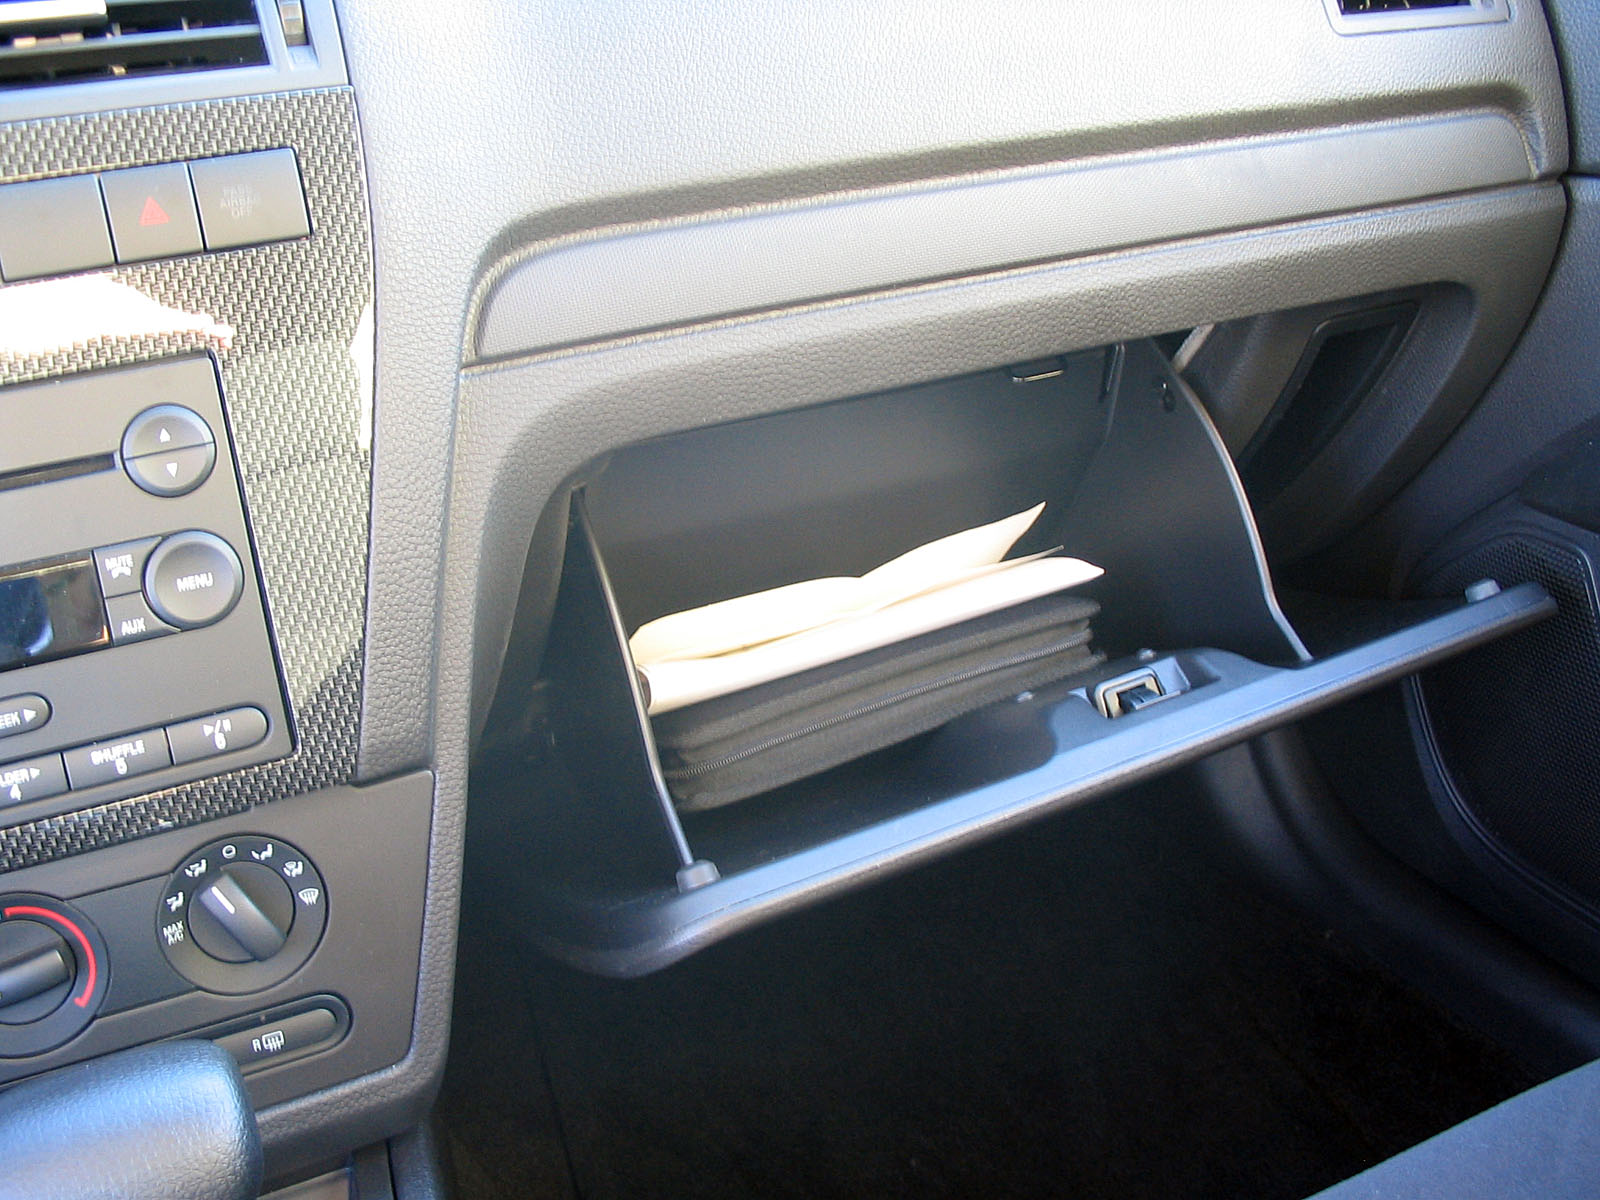 organizing documents in your car's glove box